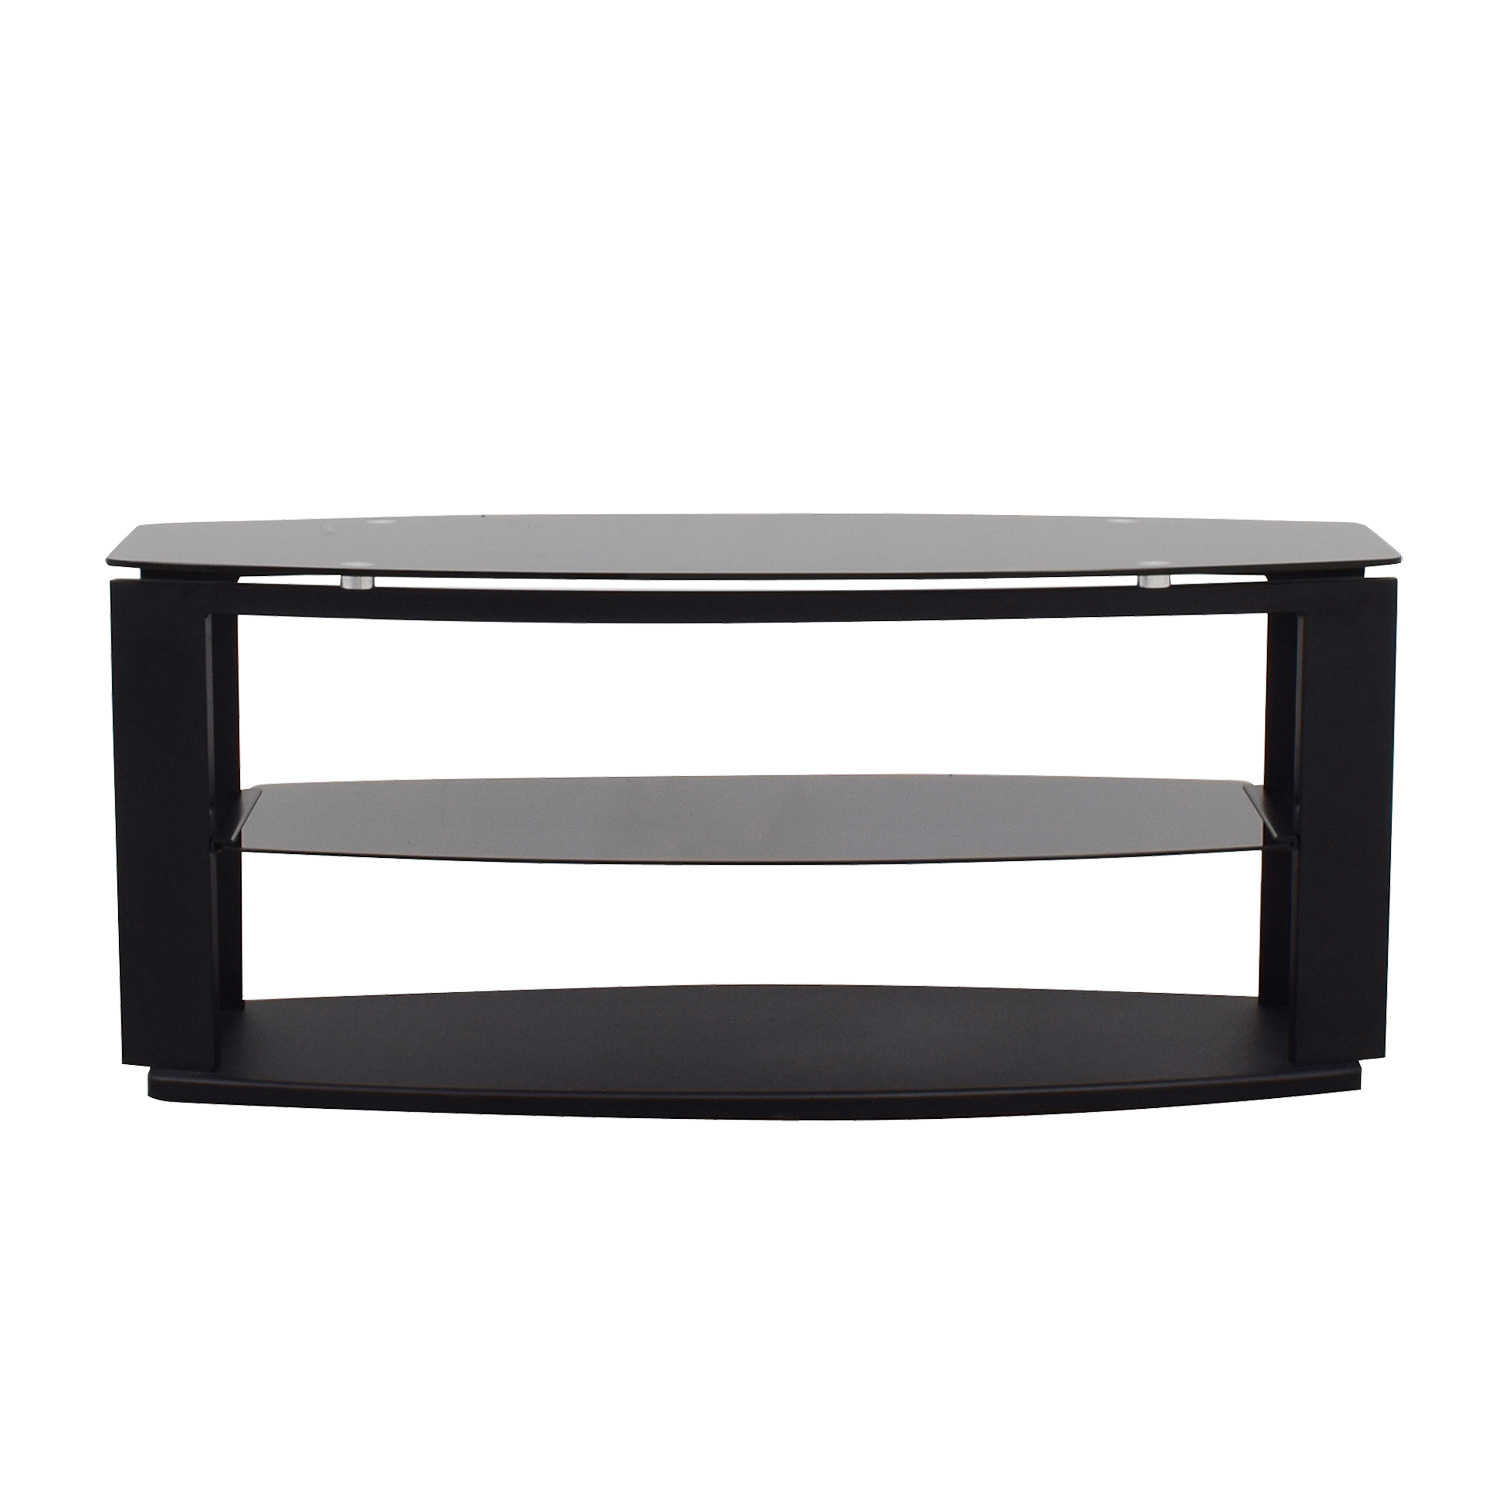 shop Modani Black Glass and Metal TV Stand Modani Storage